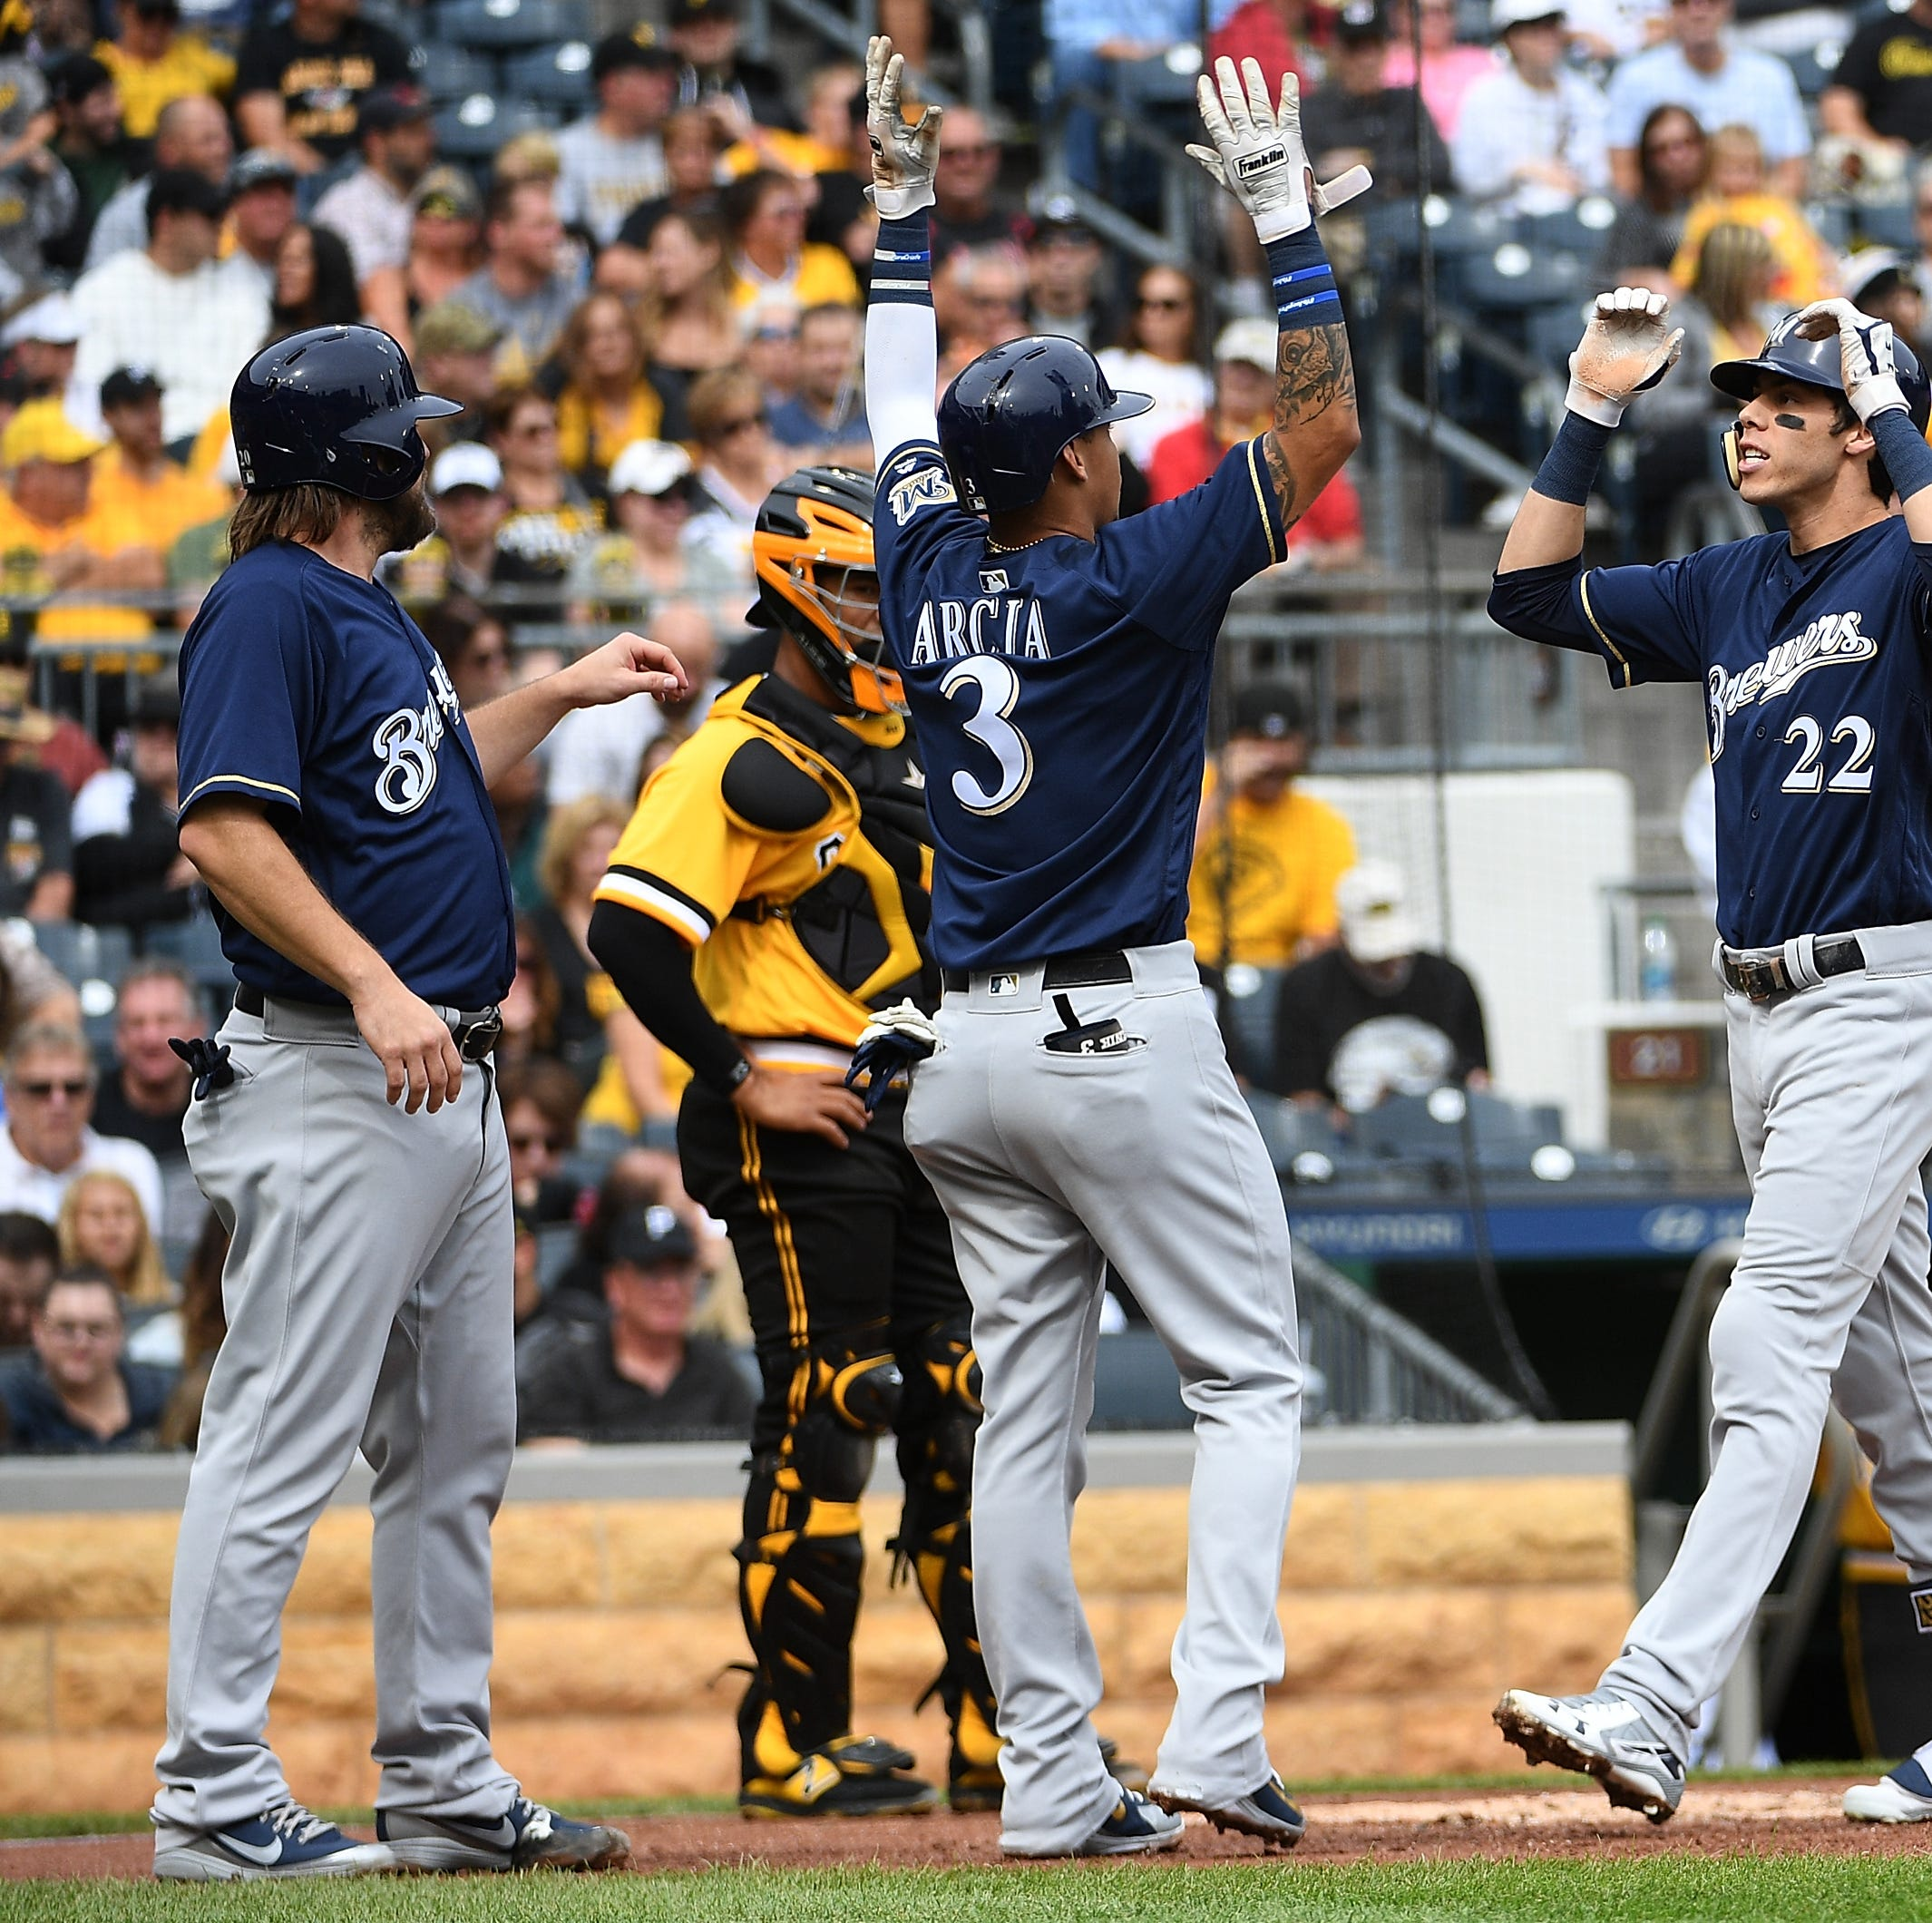 Notes: Christian Yelich feels lucky to avoid serious injury when hit by pitch Sunday